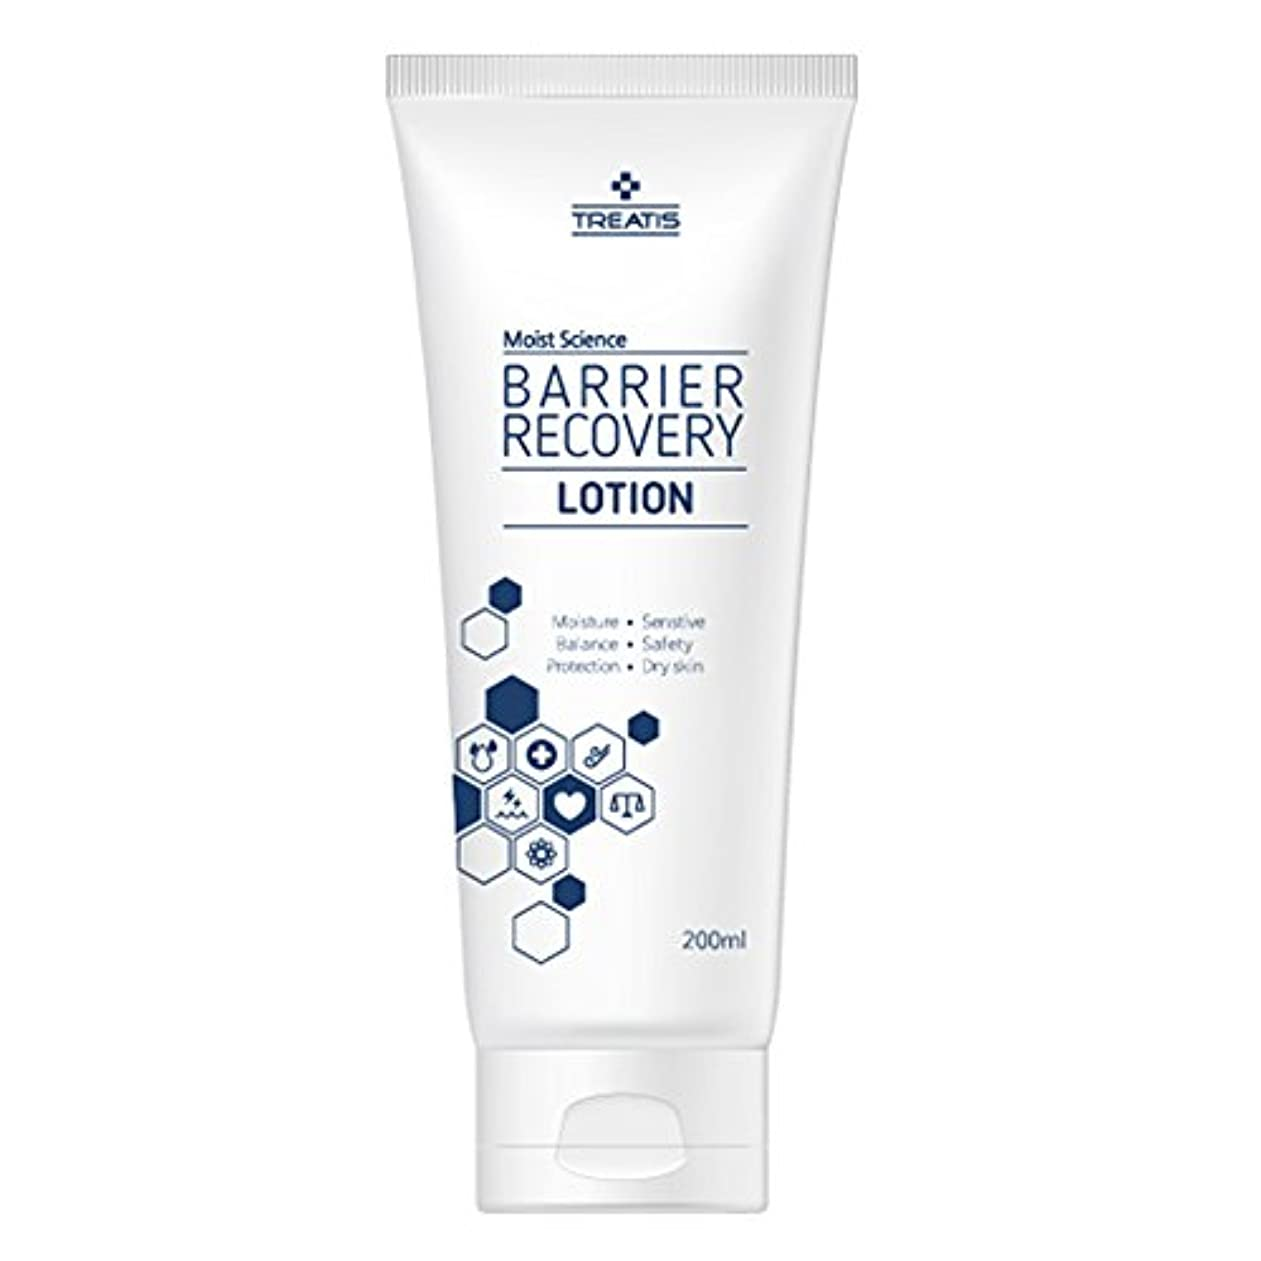 Treatis barrier recovery lotion 7oz (200ml)/Moisture, Senstive, Balance, Safty, Protection, Dry skin [並行輸入品]